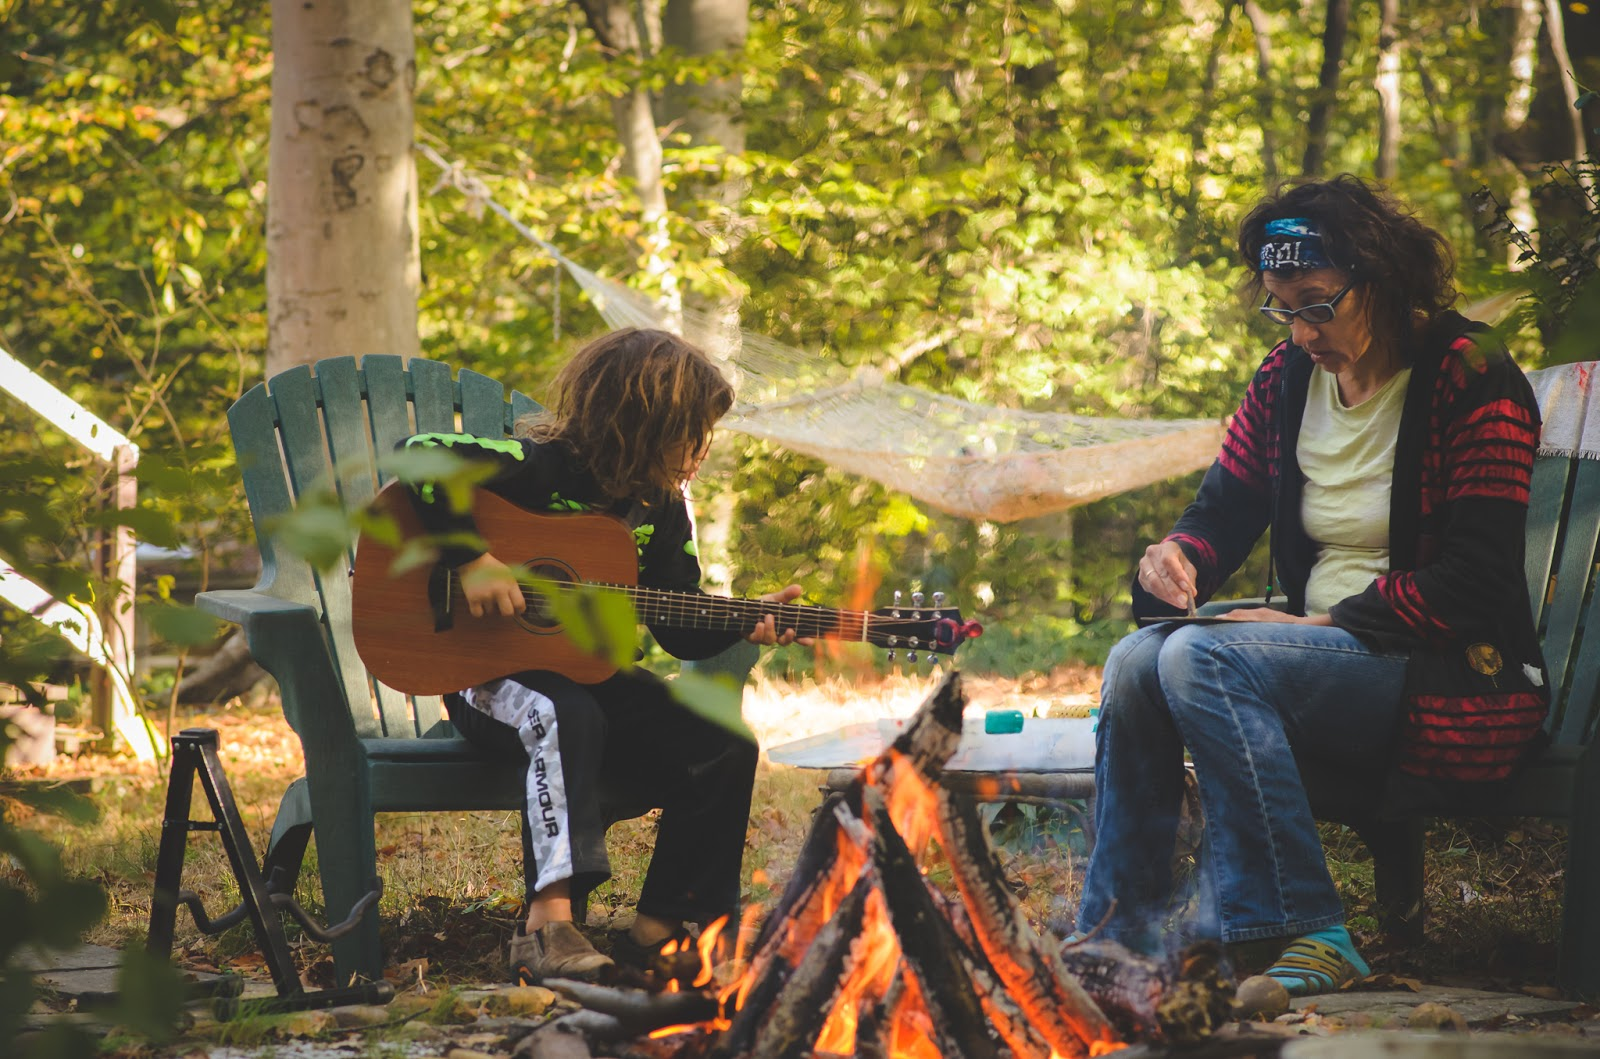 mother and son playing guitar and drawing in front of campfire ©Diana Sherblom Photography